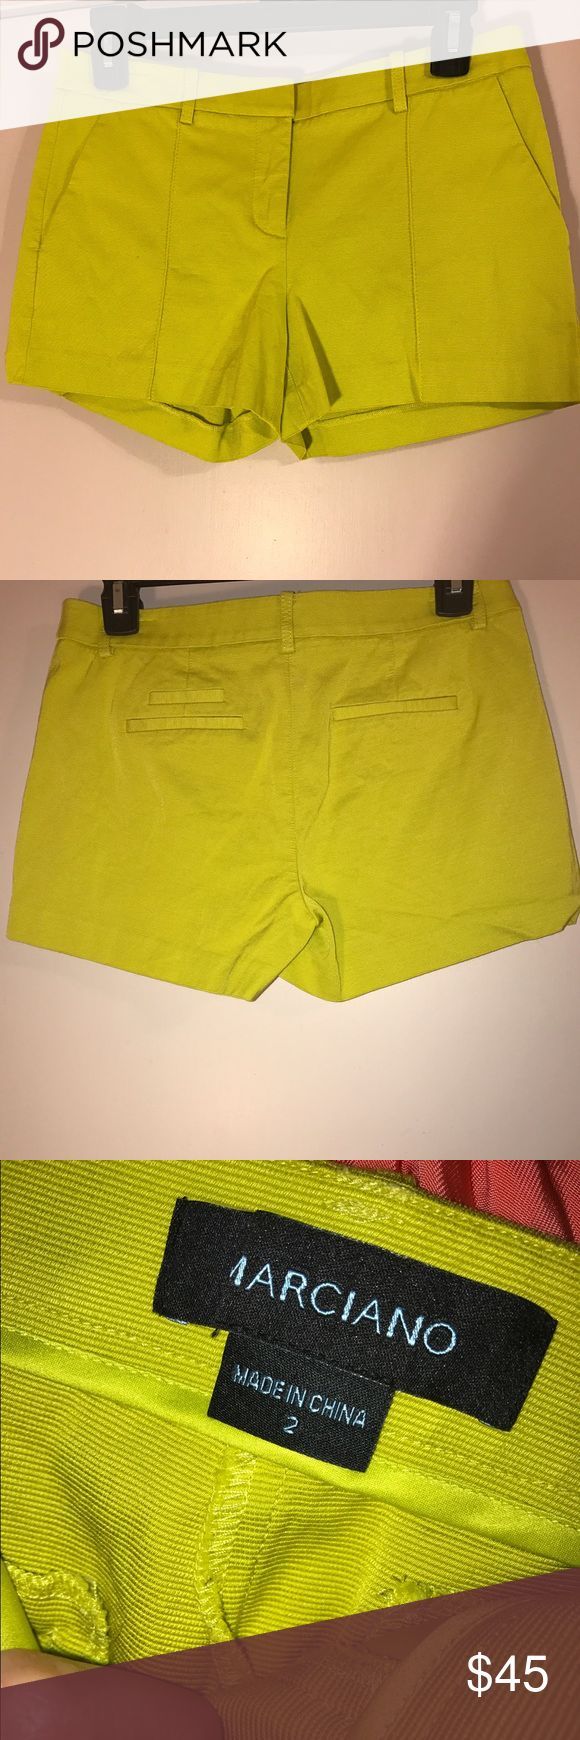 Marciano chatreuse color(neon yellow) shorts Short marciano shorts in yellowish green shade size 2 Marciano Shorts